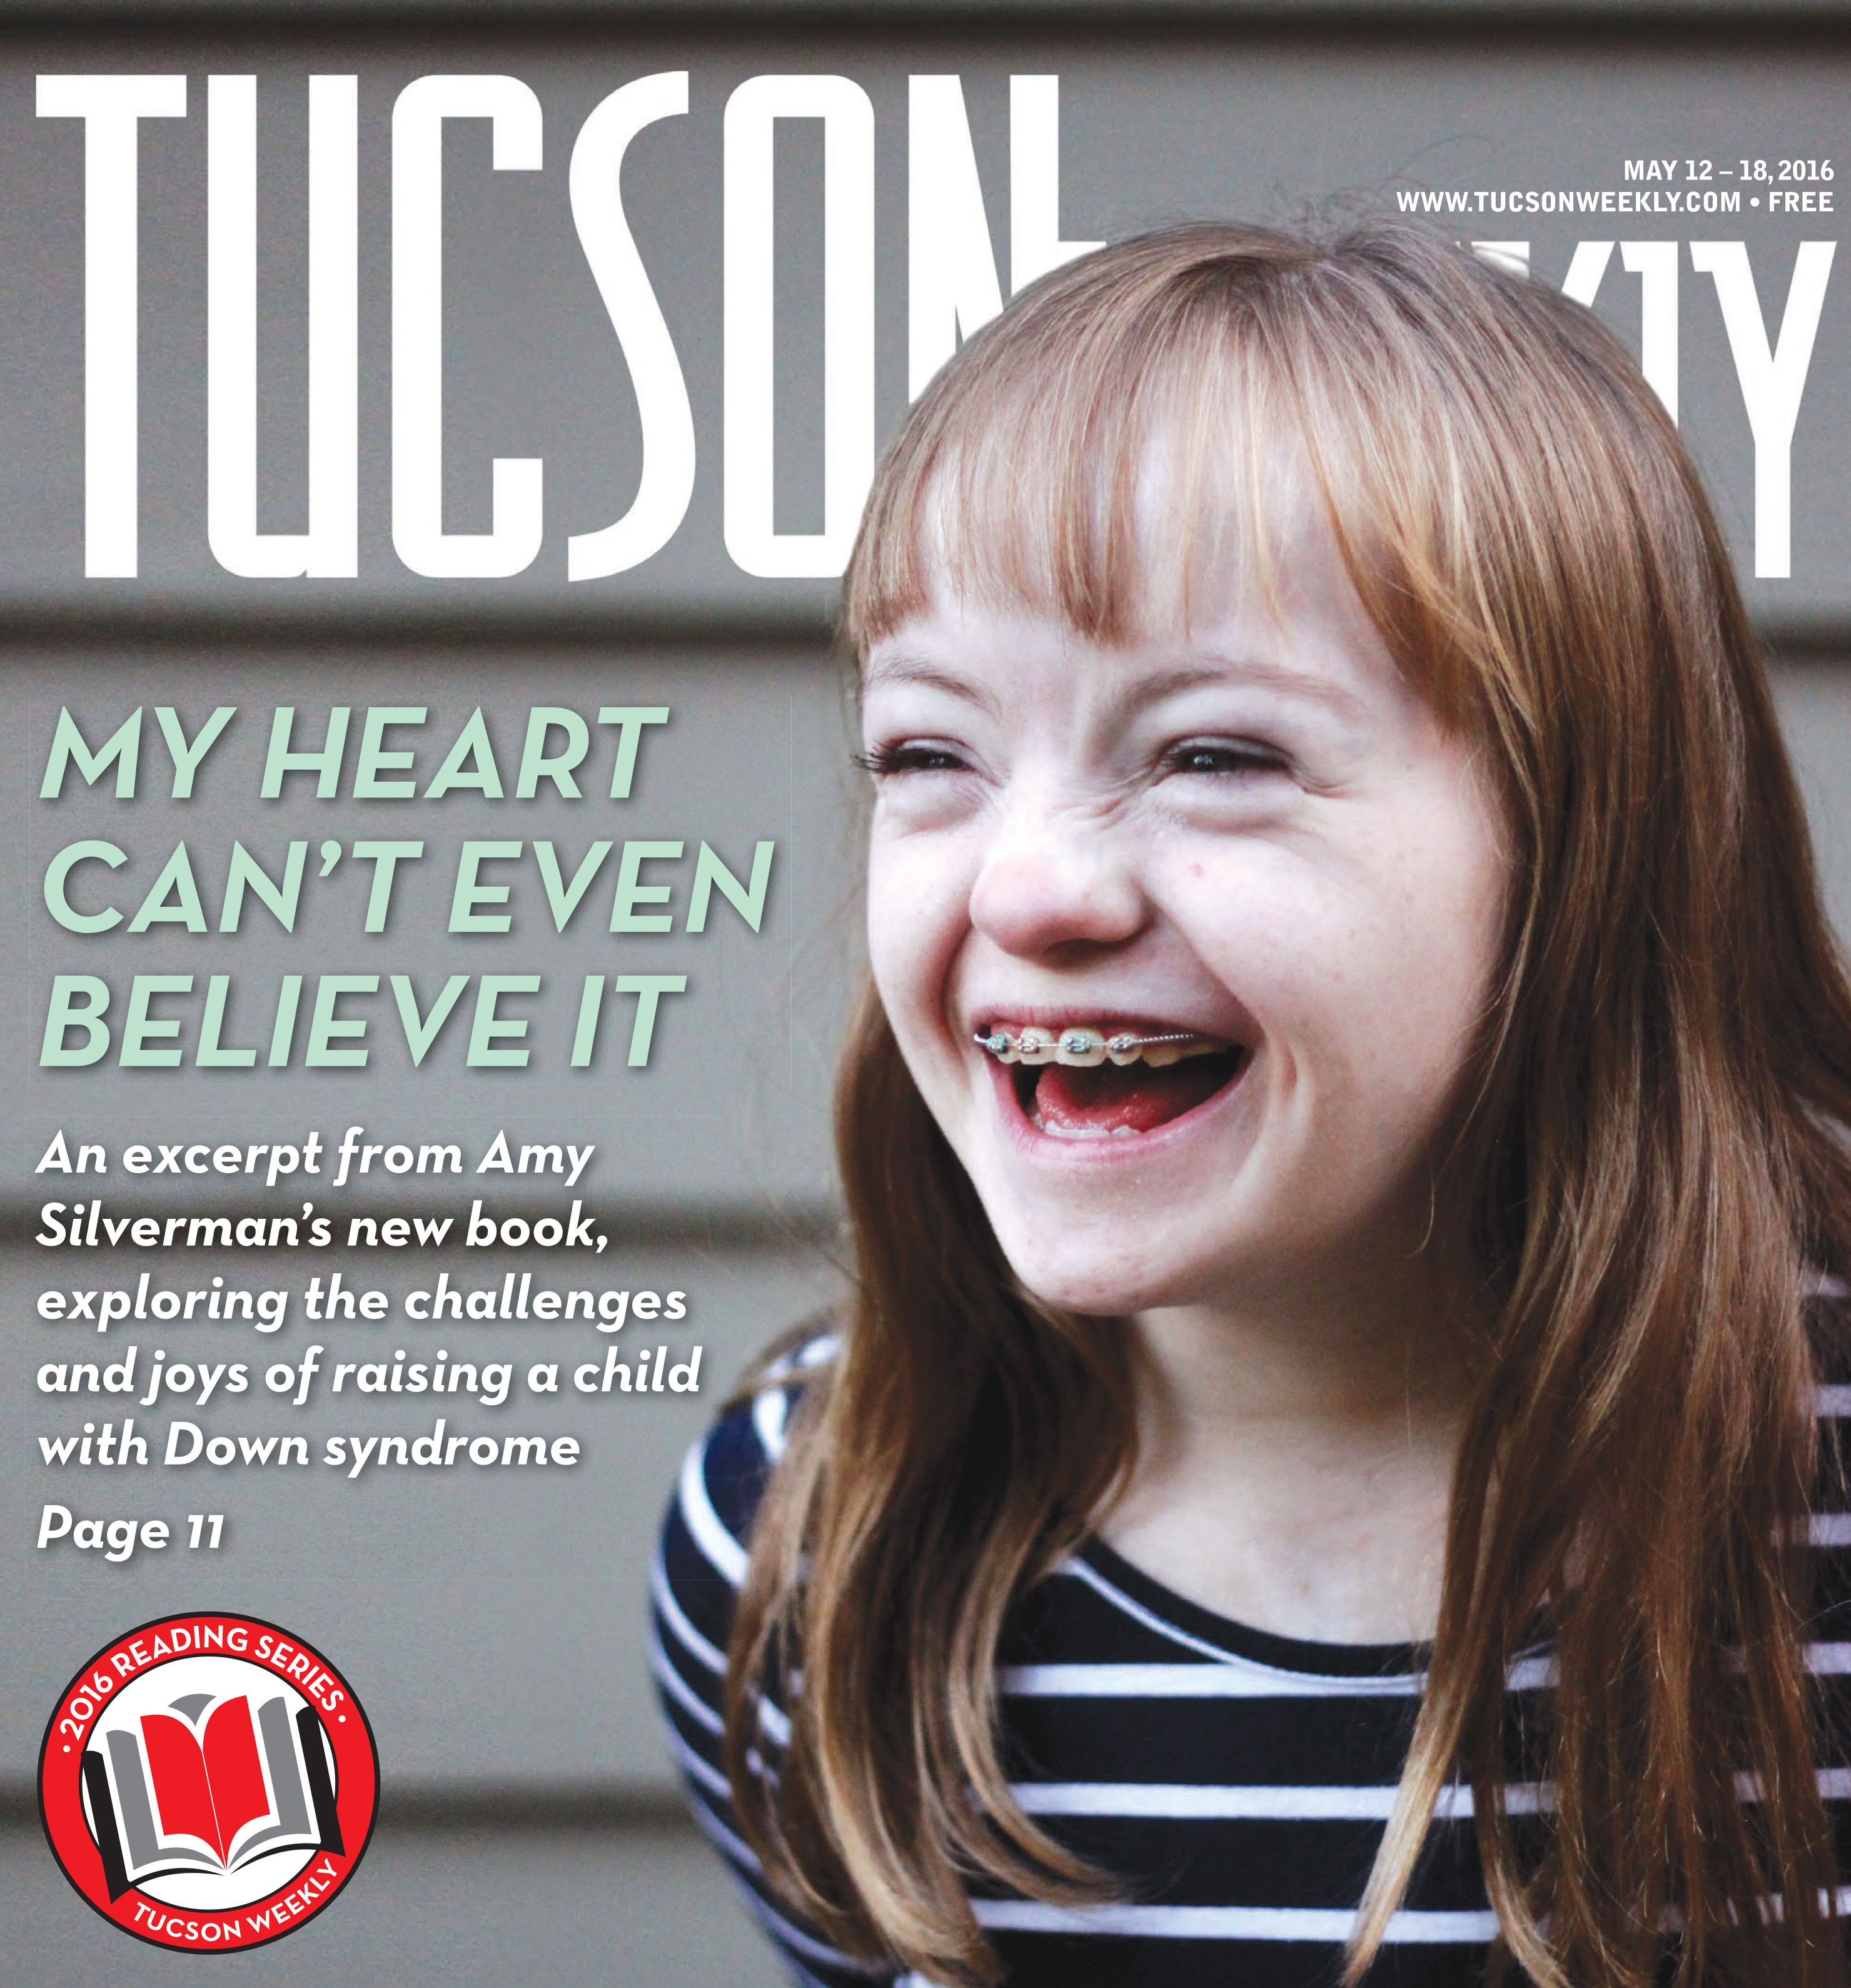 My Heart Can't Even Believe It | Book Feature | Tucson Weekly